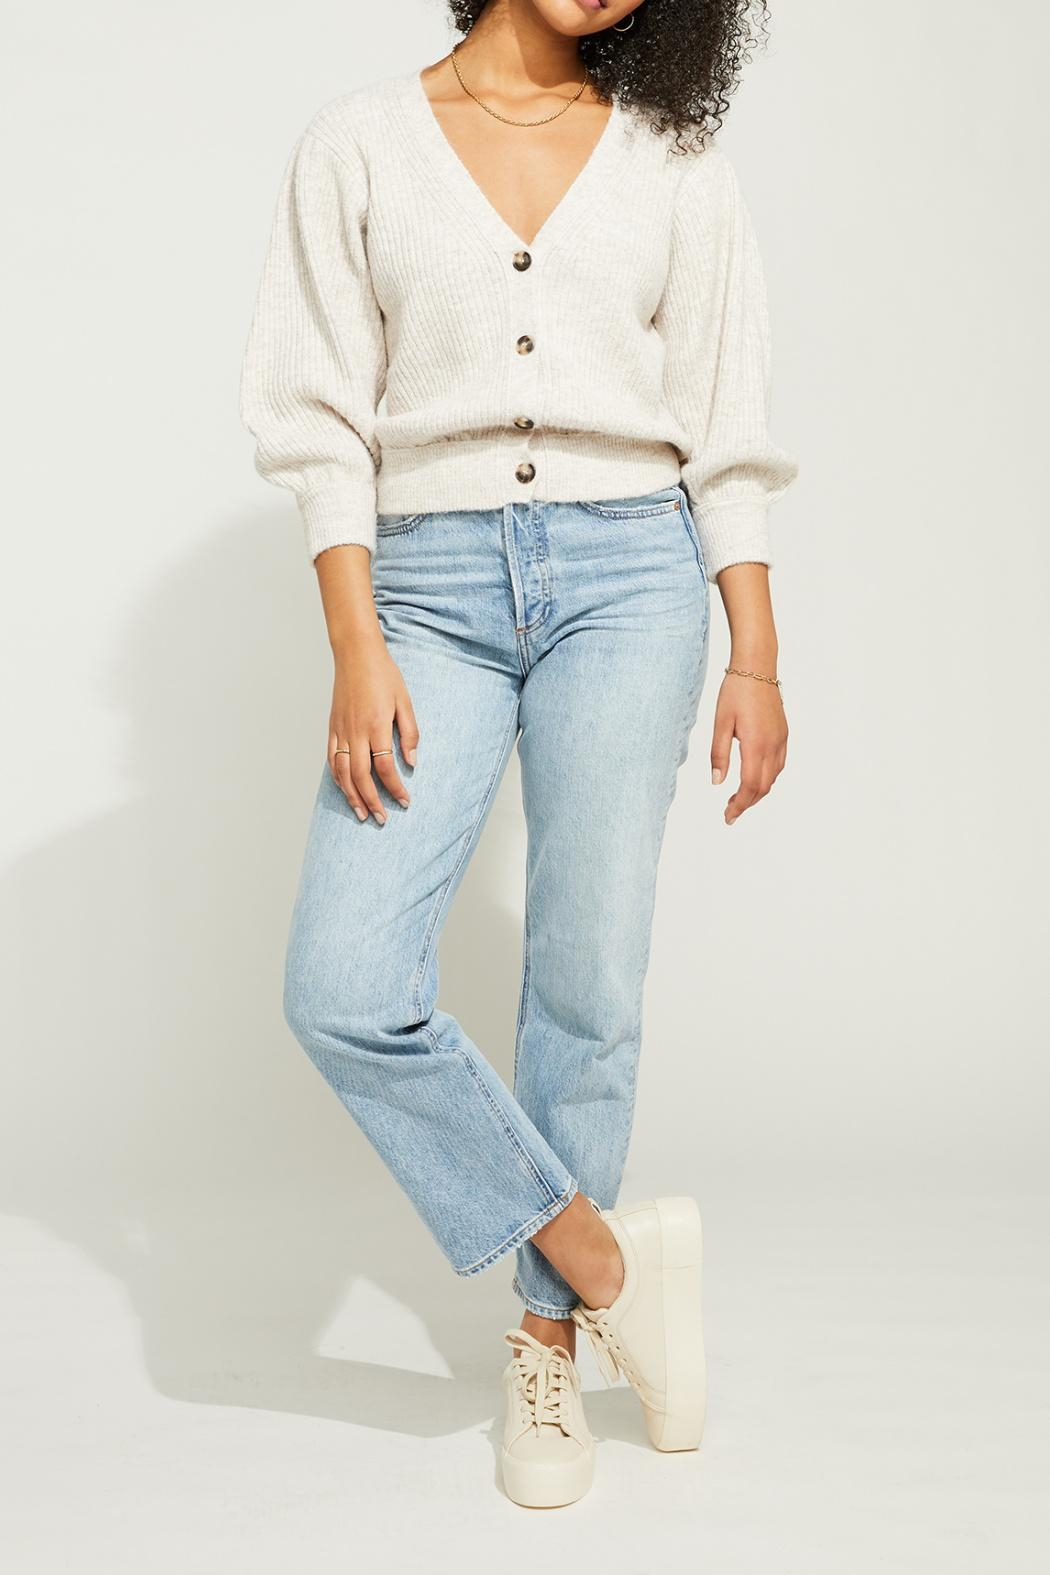 Gentle Fawn Cropped Button Front Cardigan - Front Full Image